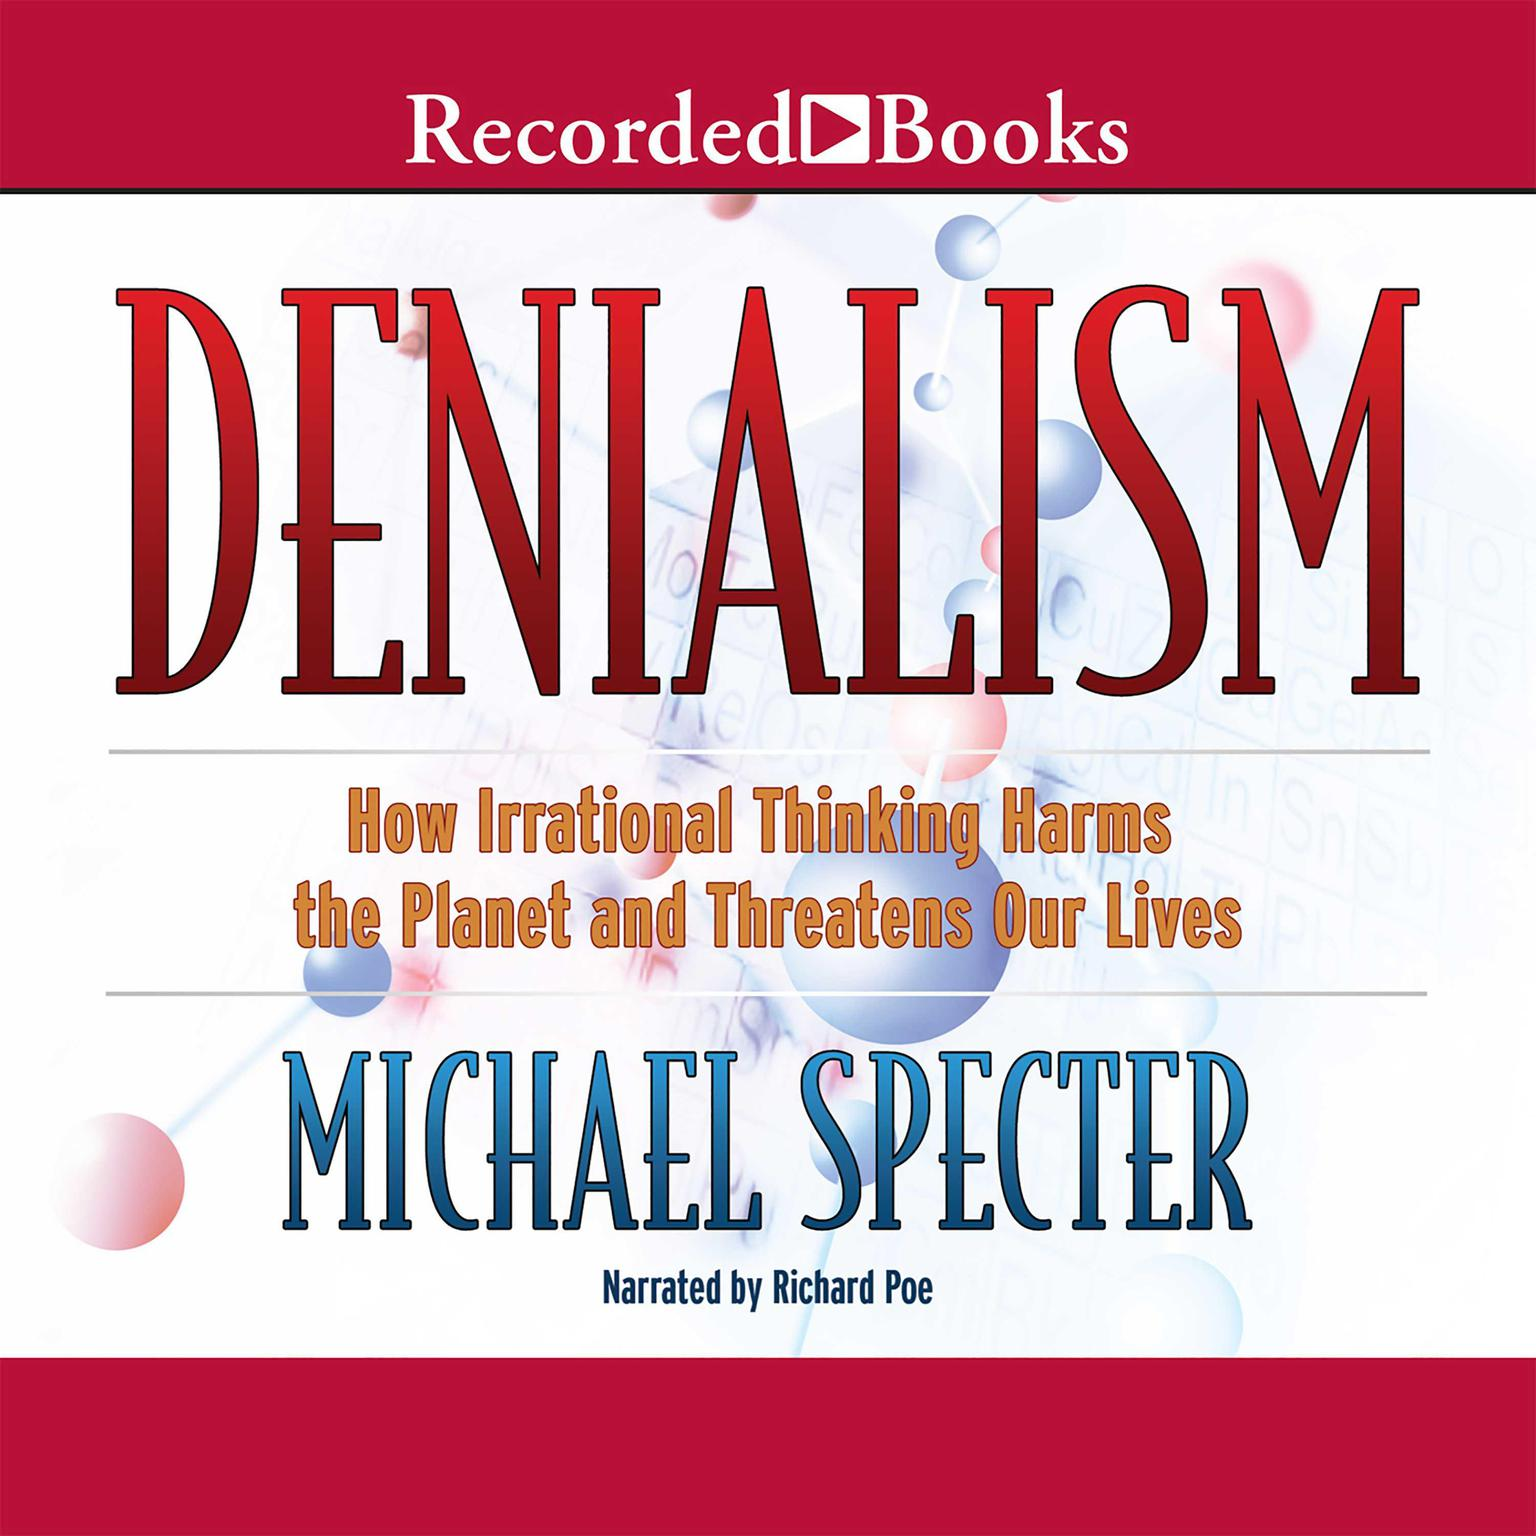 Printable Denialism: How Irrational Thinking Hinders Scientific Progress, Harms the Planet, and Threatens Our Lives Audiobook Cover Art